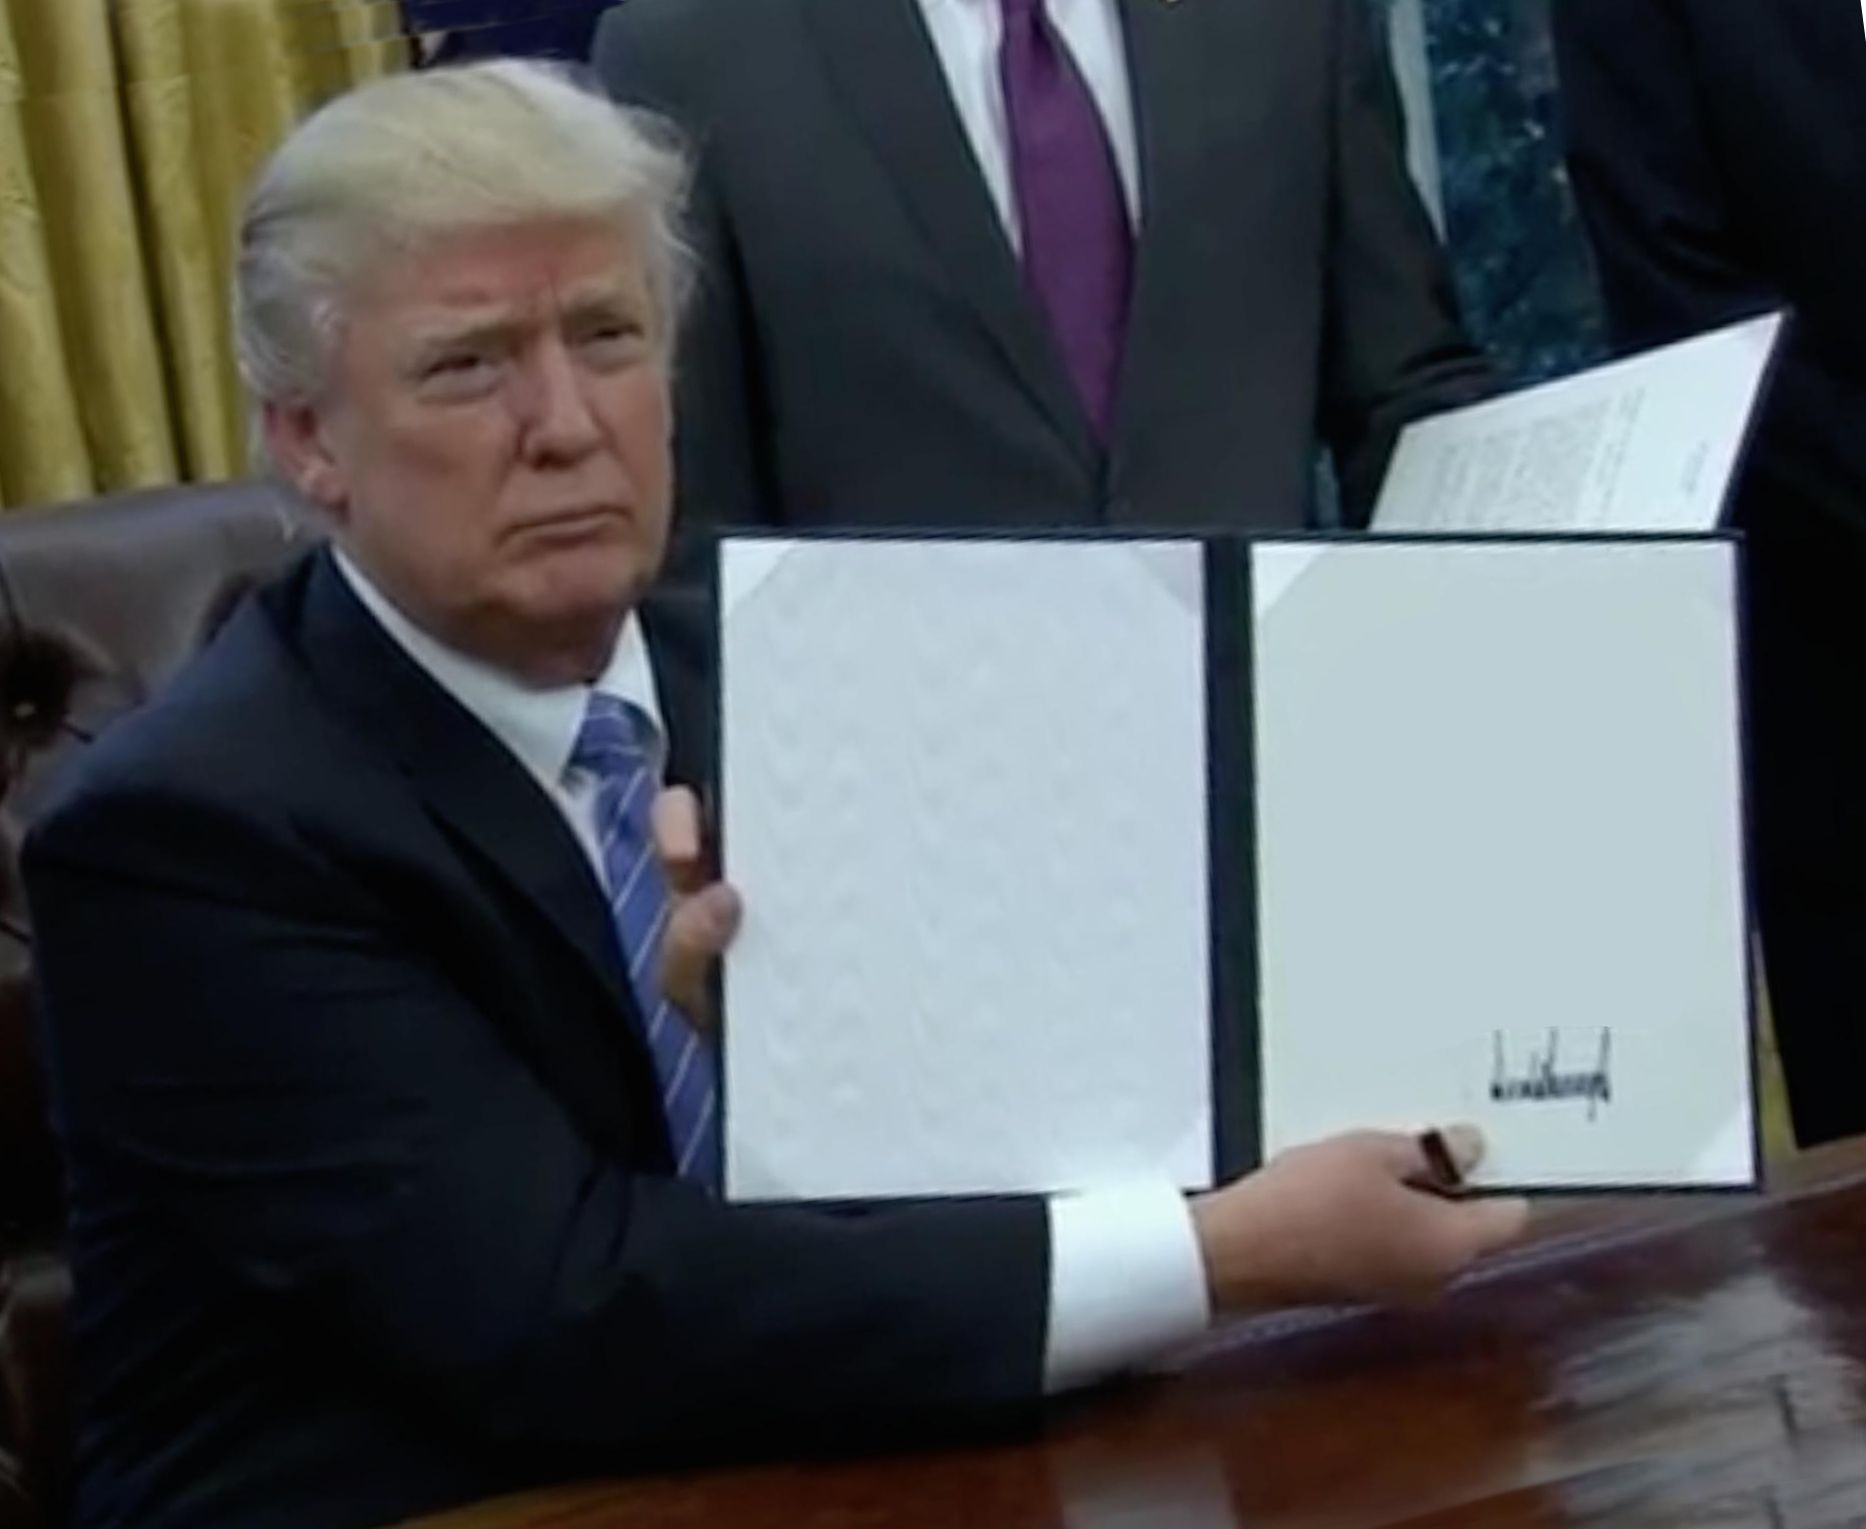 Trump Bill Signing Blank Meme Template